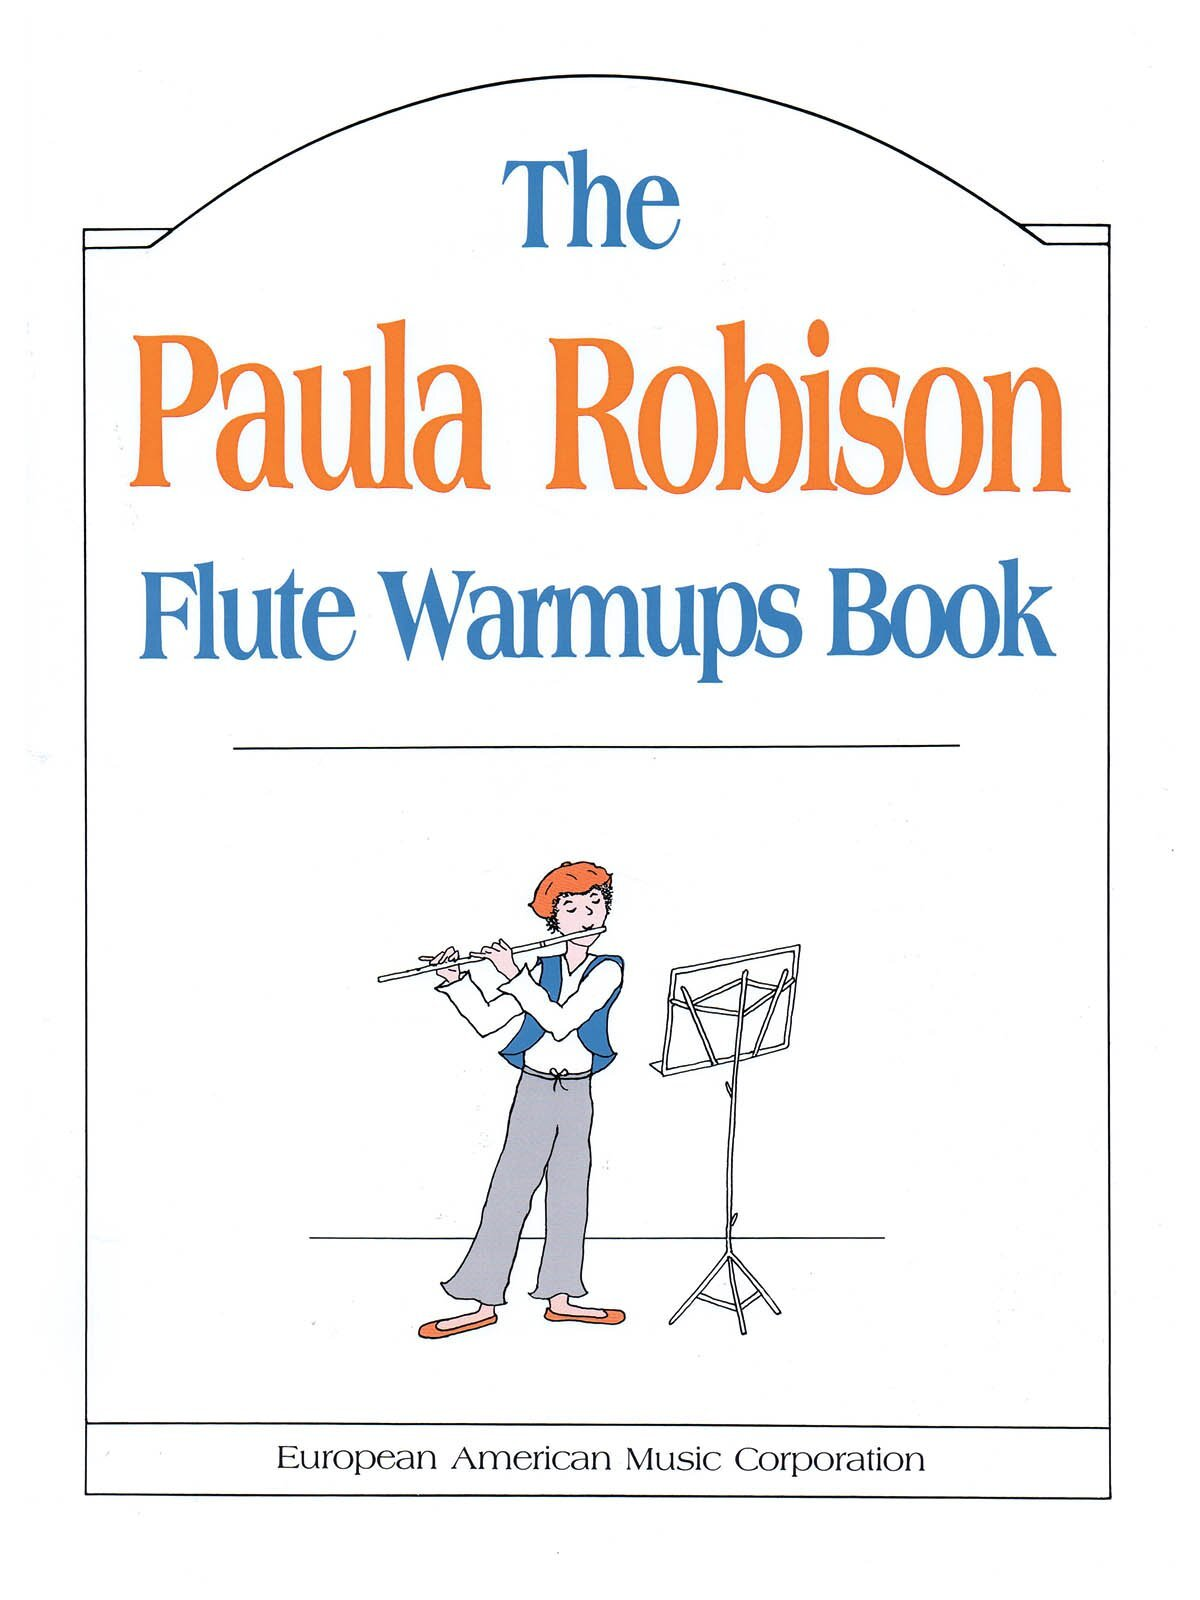 The_Paula_Robison_Flute_Warmups_Book_2048x.jpg